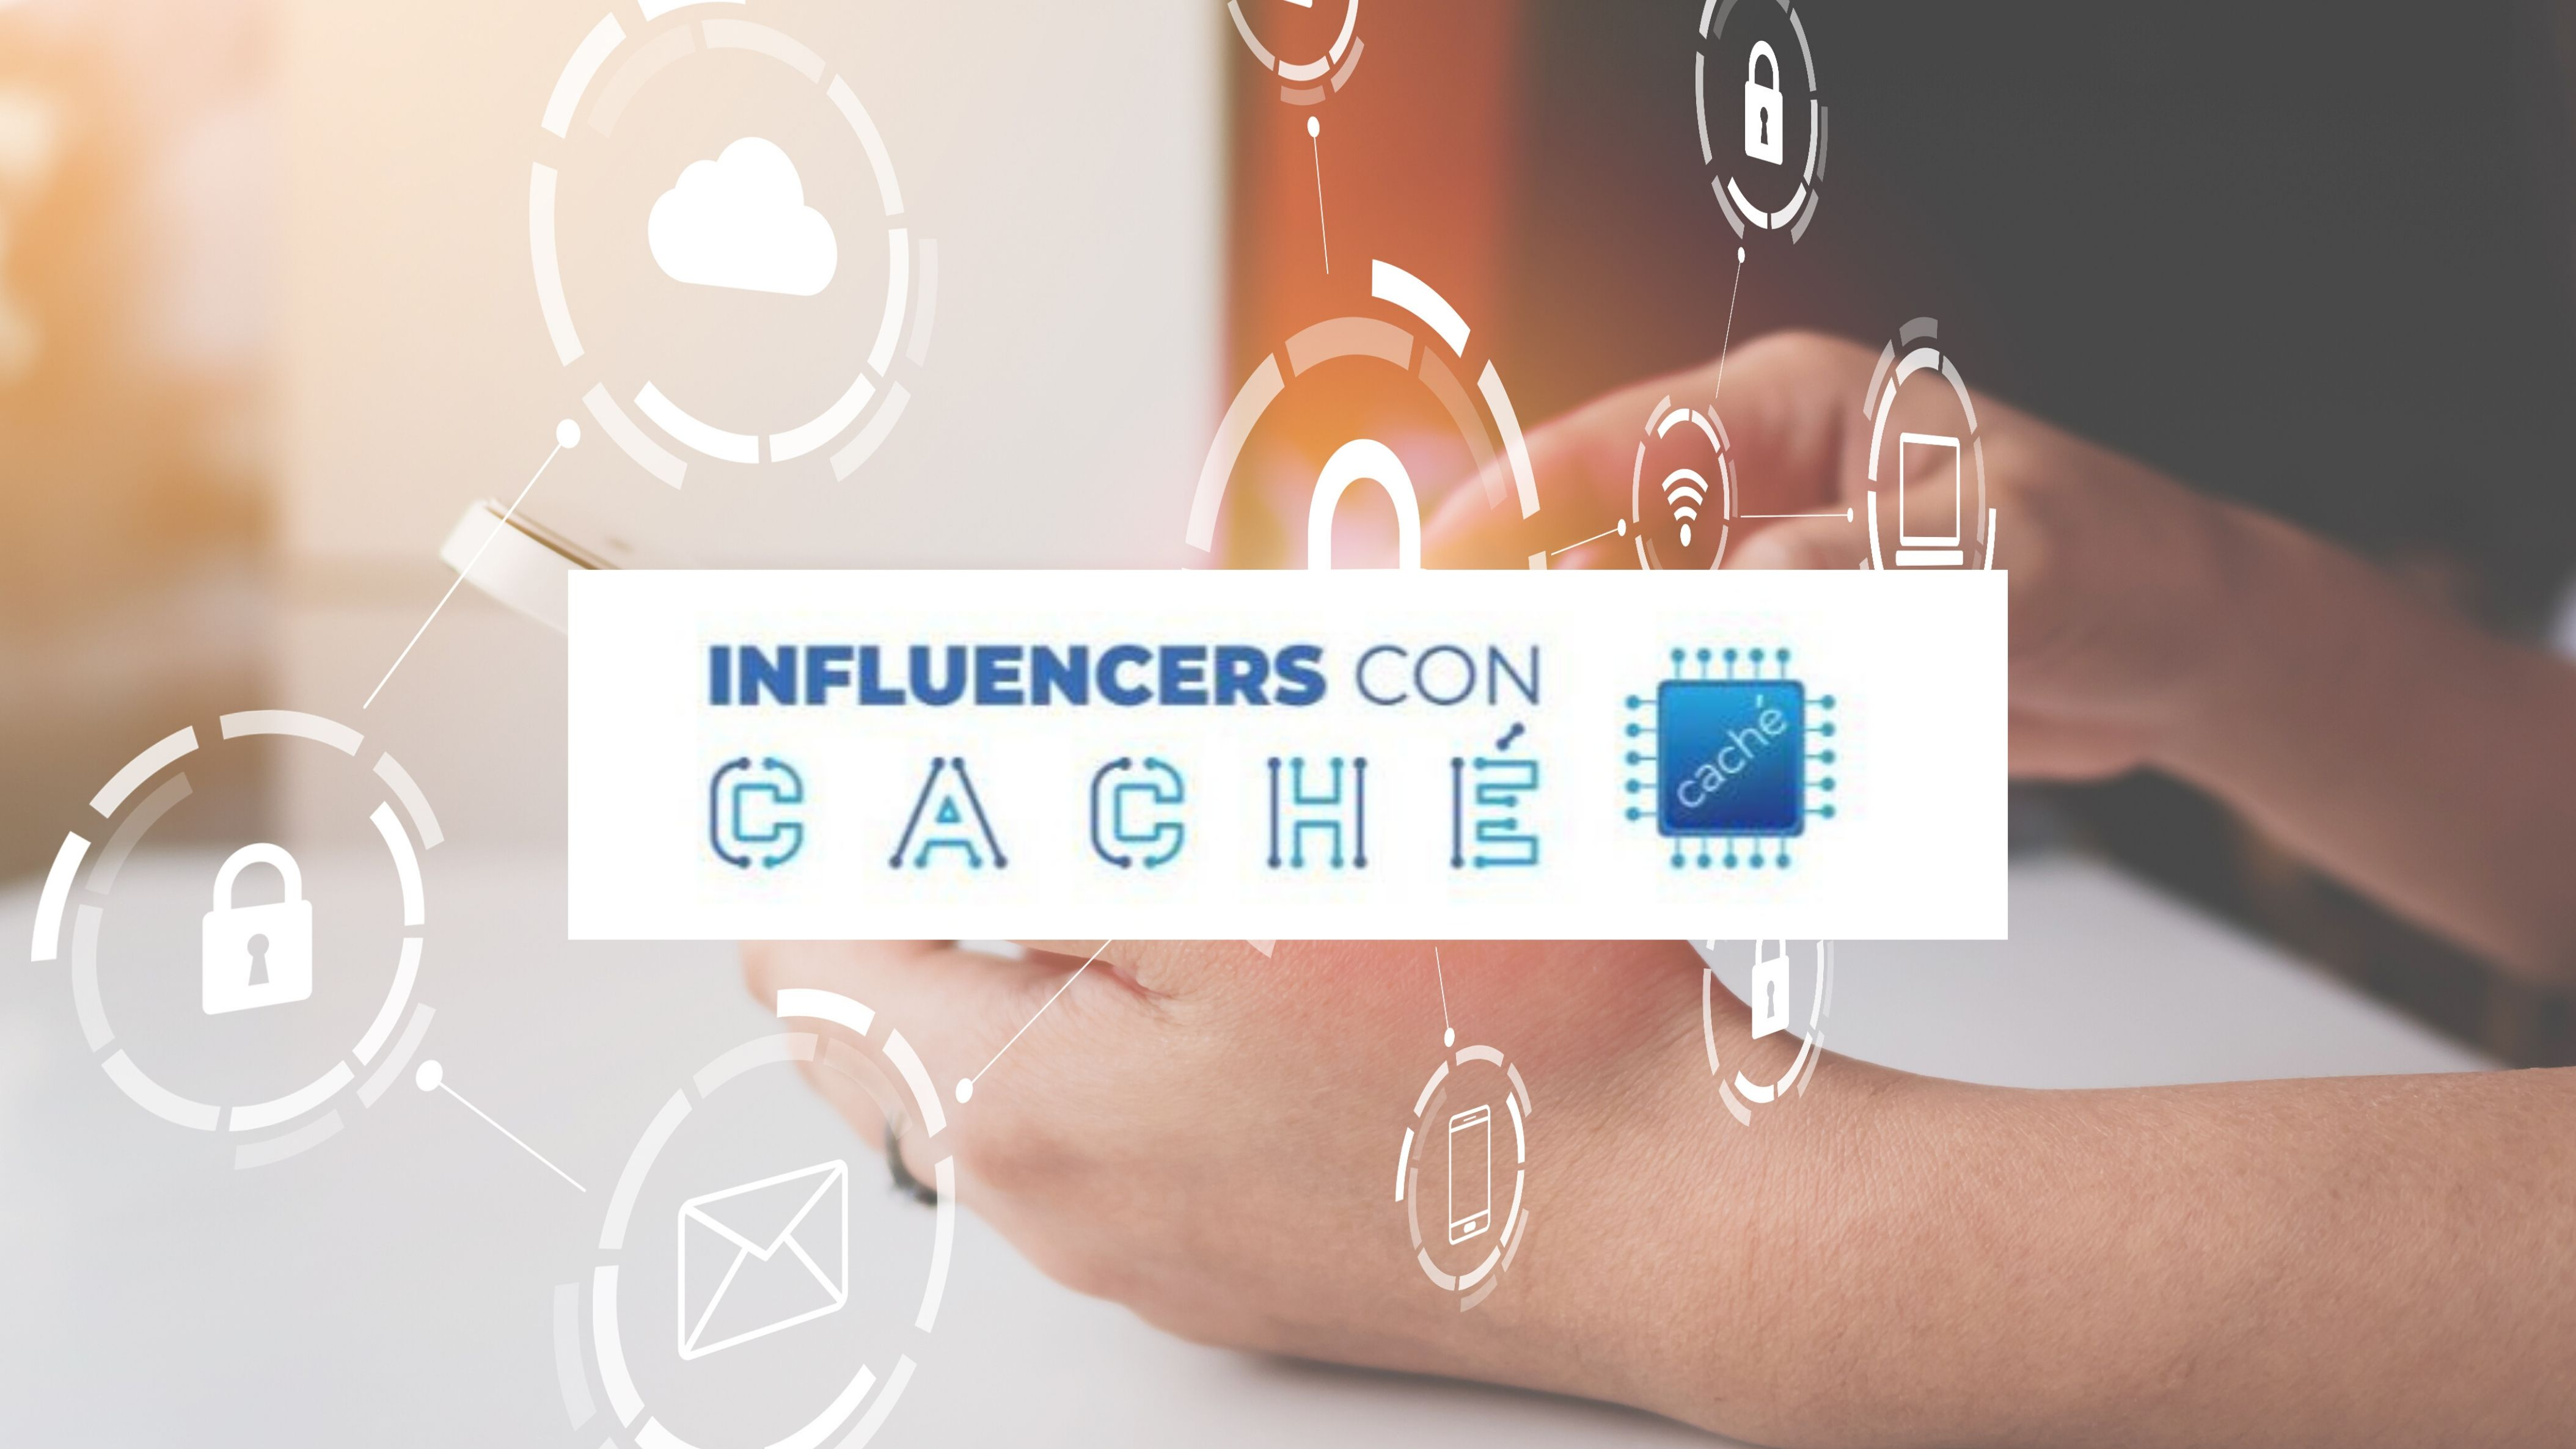 cciii influencers